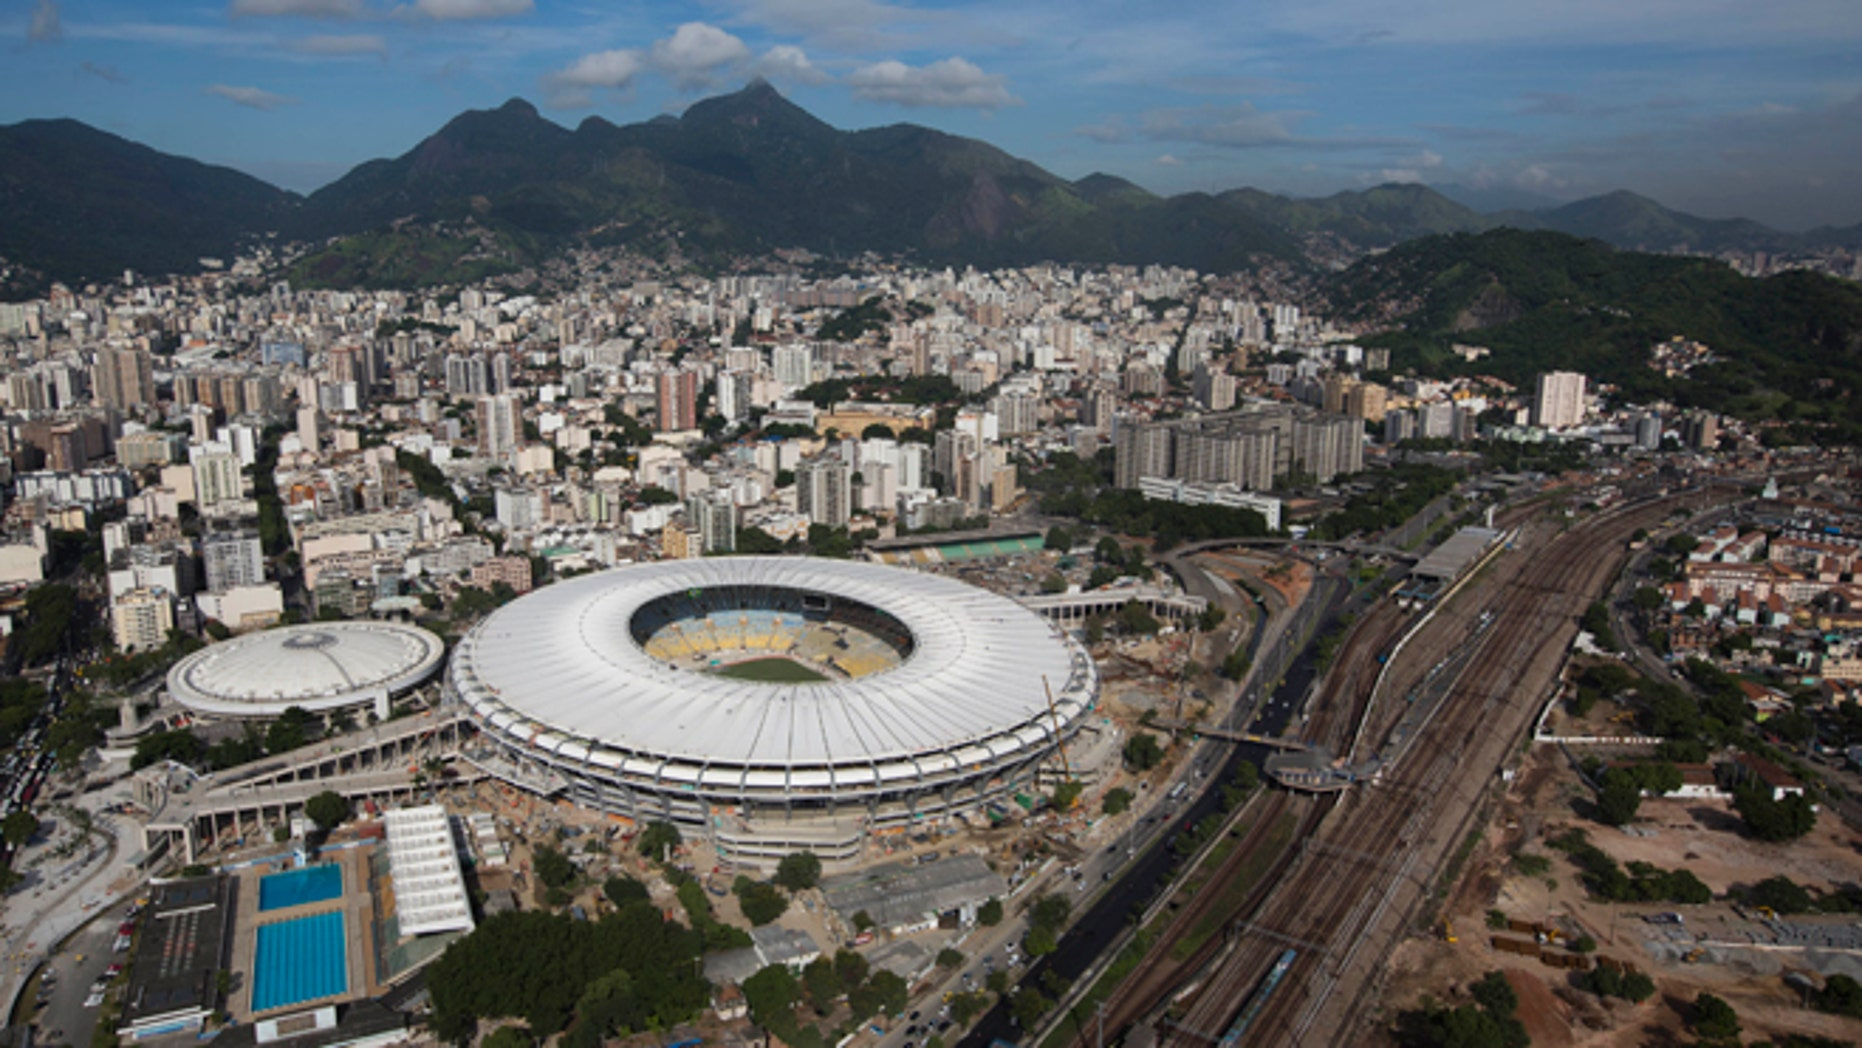 Aerial view shows the new rooftop of the Maracana Stadium, which is undergoing renovations in preparation for the 2013 Confederations Cup and 2014 World Cup in Rio de Janeiro, Brazil, Thursday, April 11, 2013. (AP Photo/Felipe Dana)